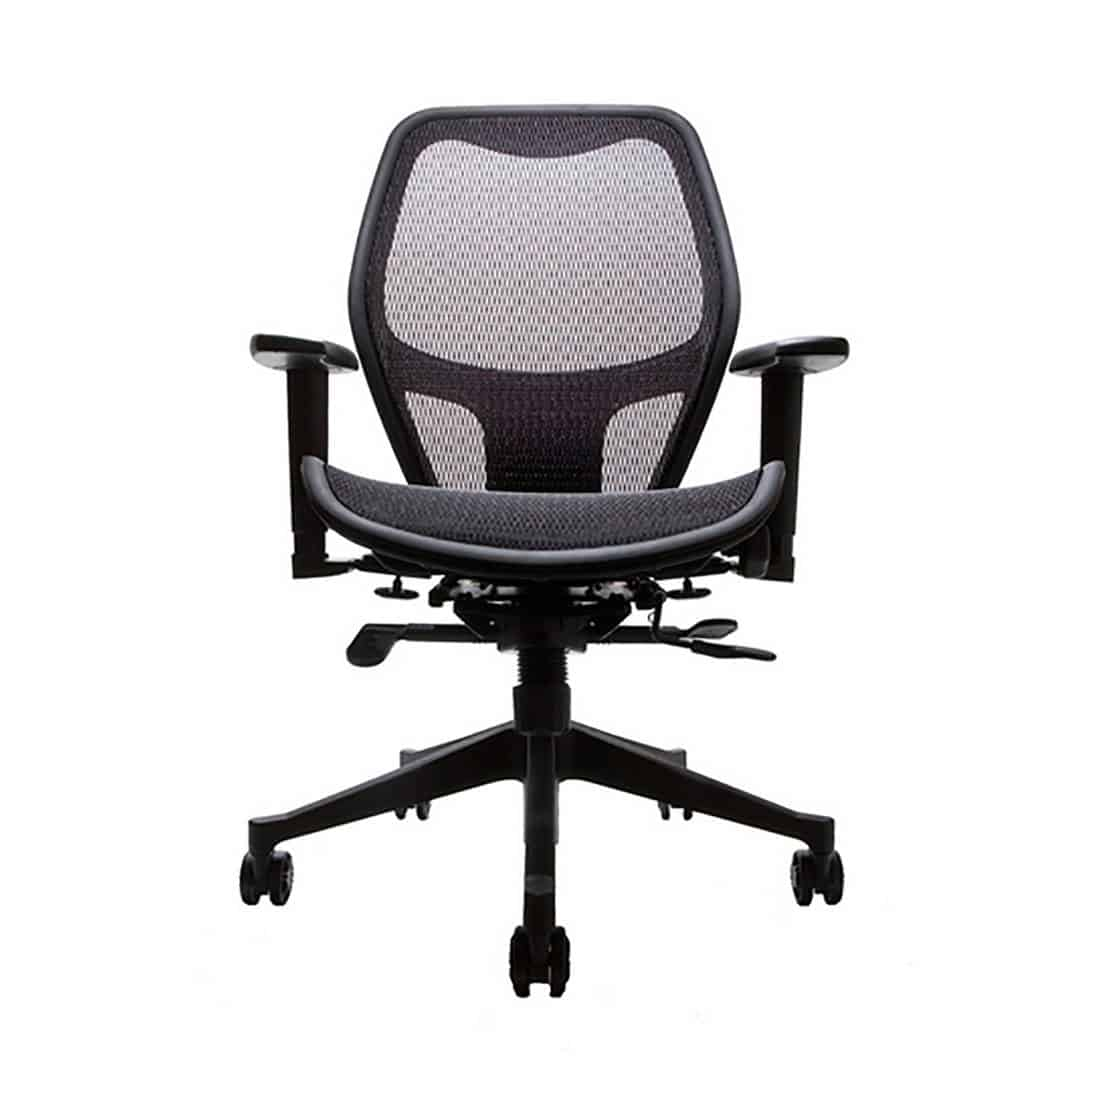 Compel Net Black Mesh Back and Seat Task Chair with 3-way adjustable arms CAL 133 certified